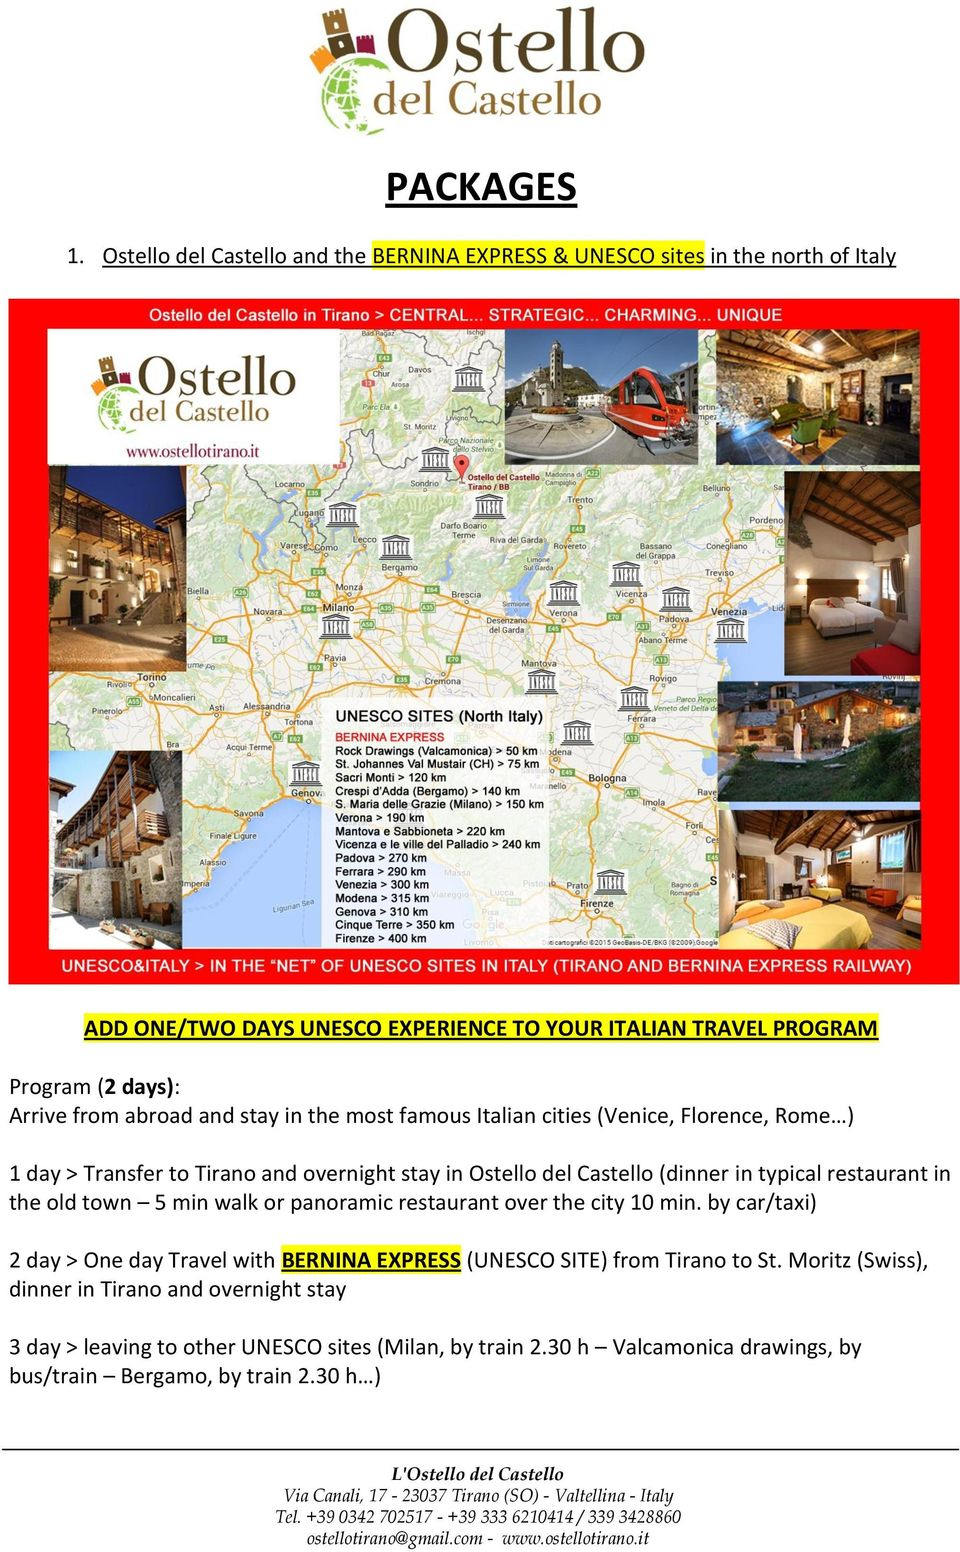 from abroad and stay in the most famous Italian cities (Venice, Florence, Rome ) 1 day > Transfer to Tirano and overnight stay in Ostello del Castello (dinner in typical